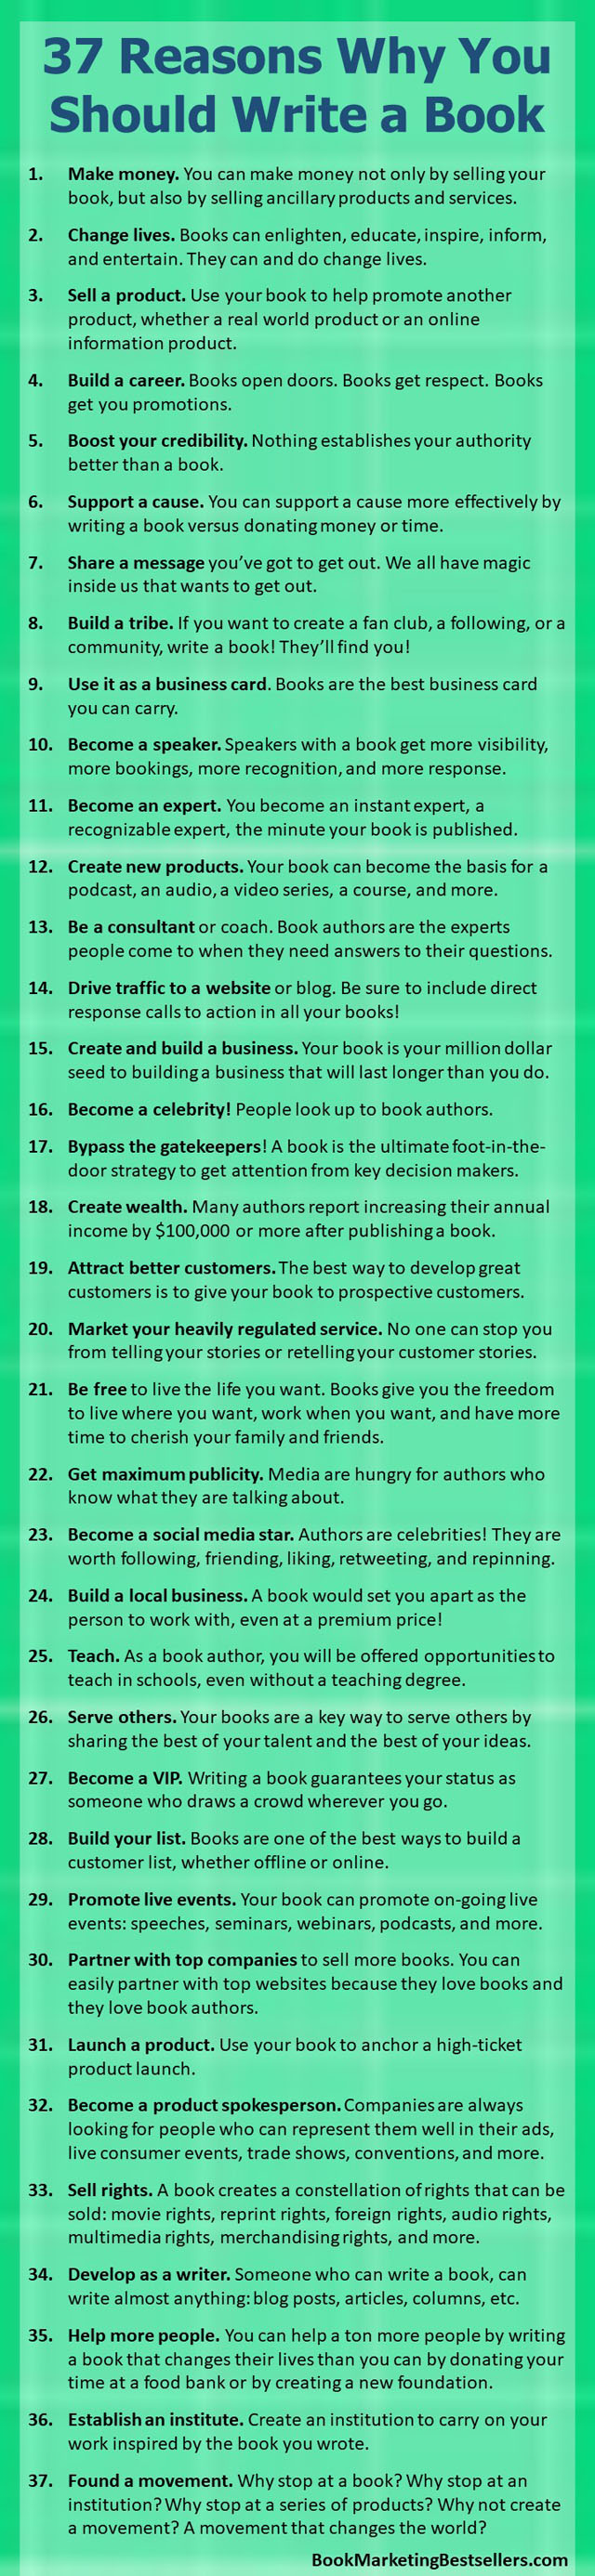 37 Reasons to Write a Book: The sooner you write a book, the better (for you and your business). You can certainly write a book within the next 60 days! But money isn't the only reason to write a book. You can change the world!